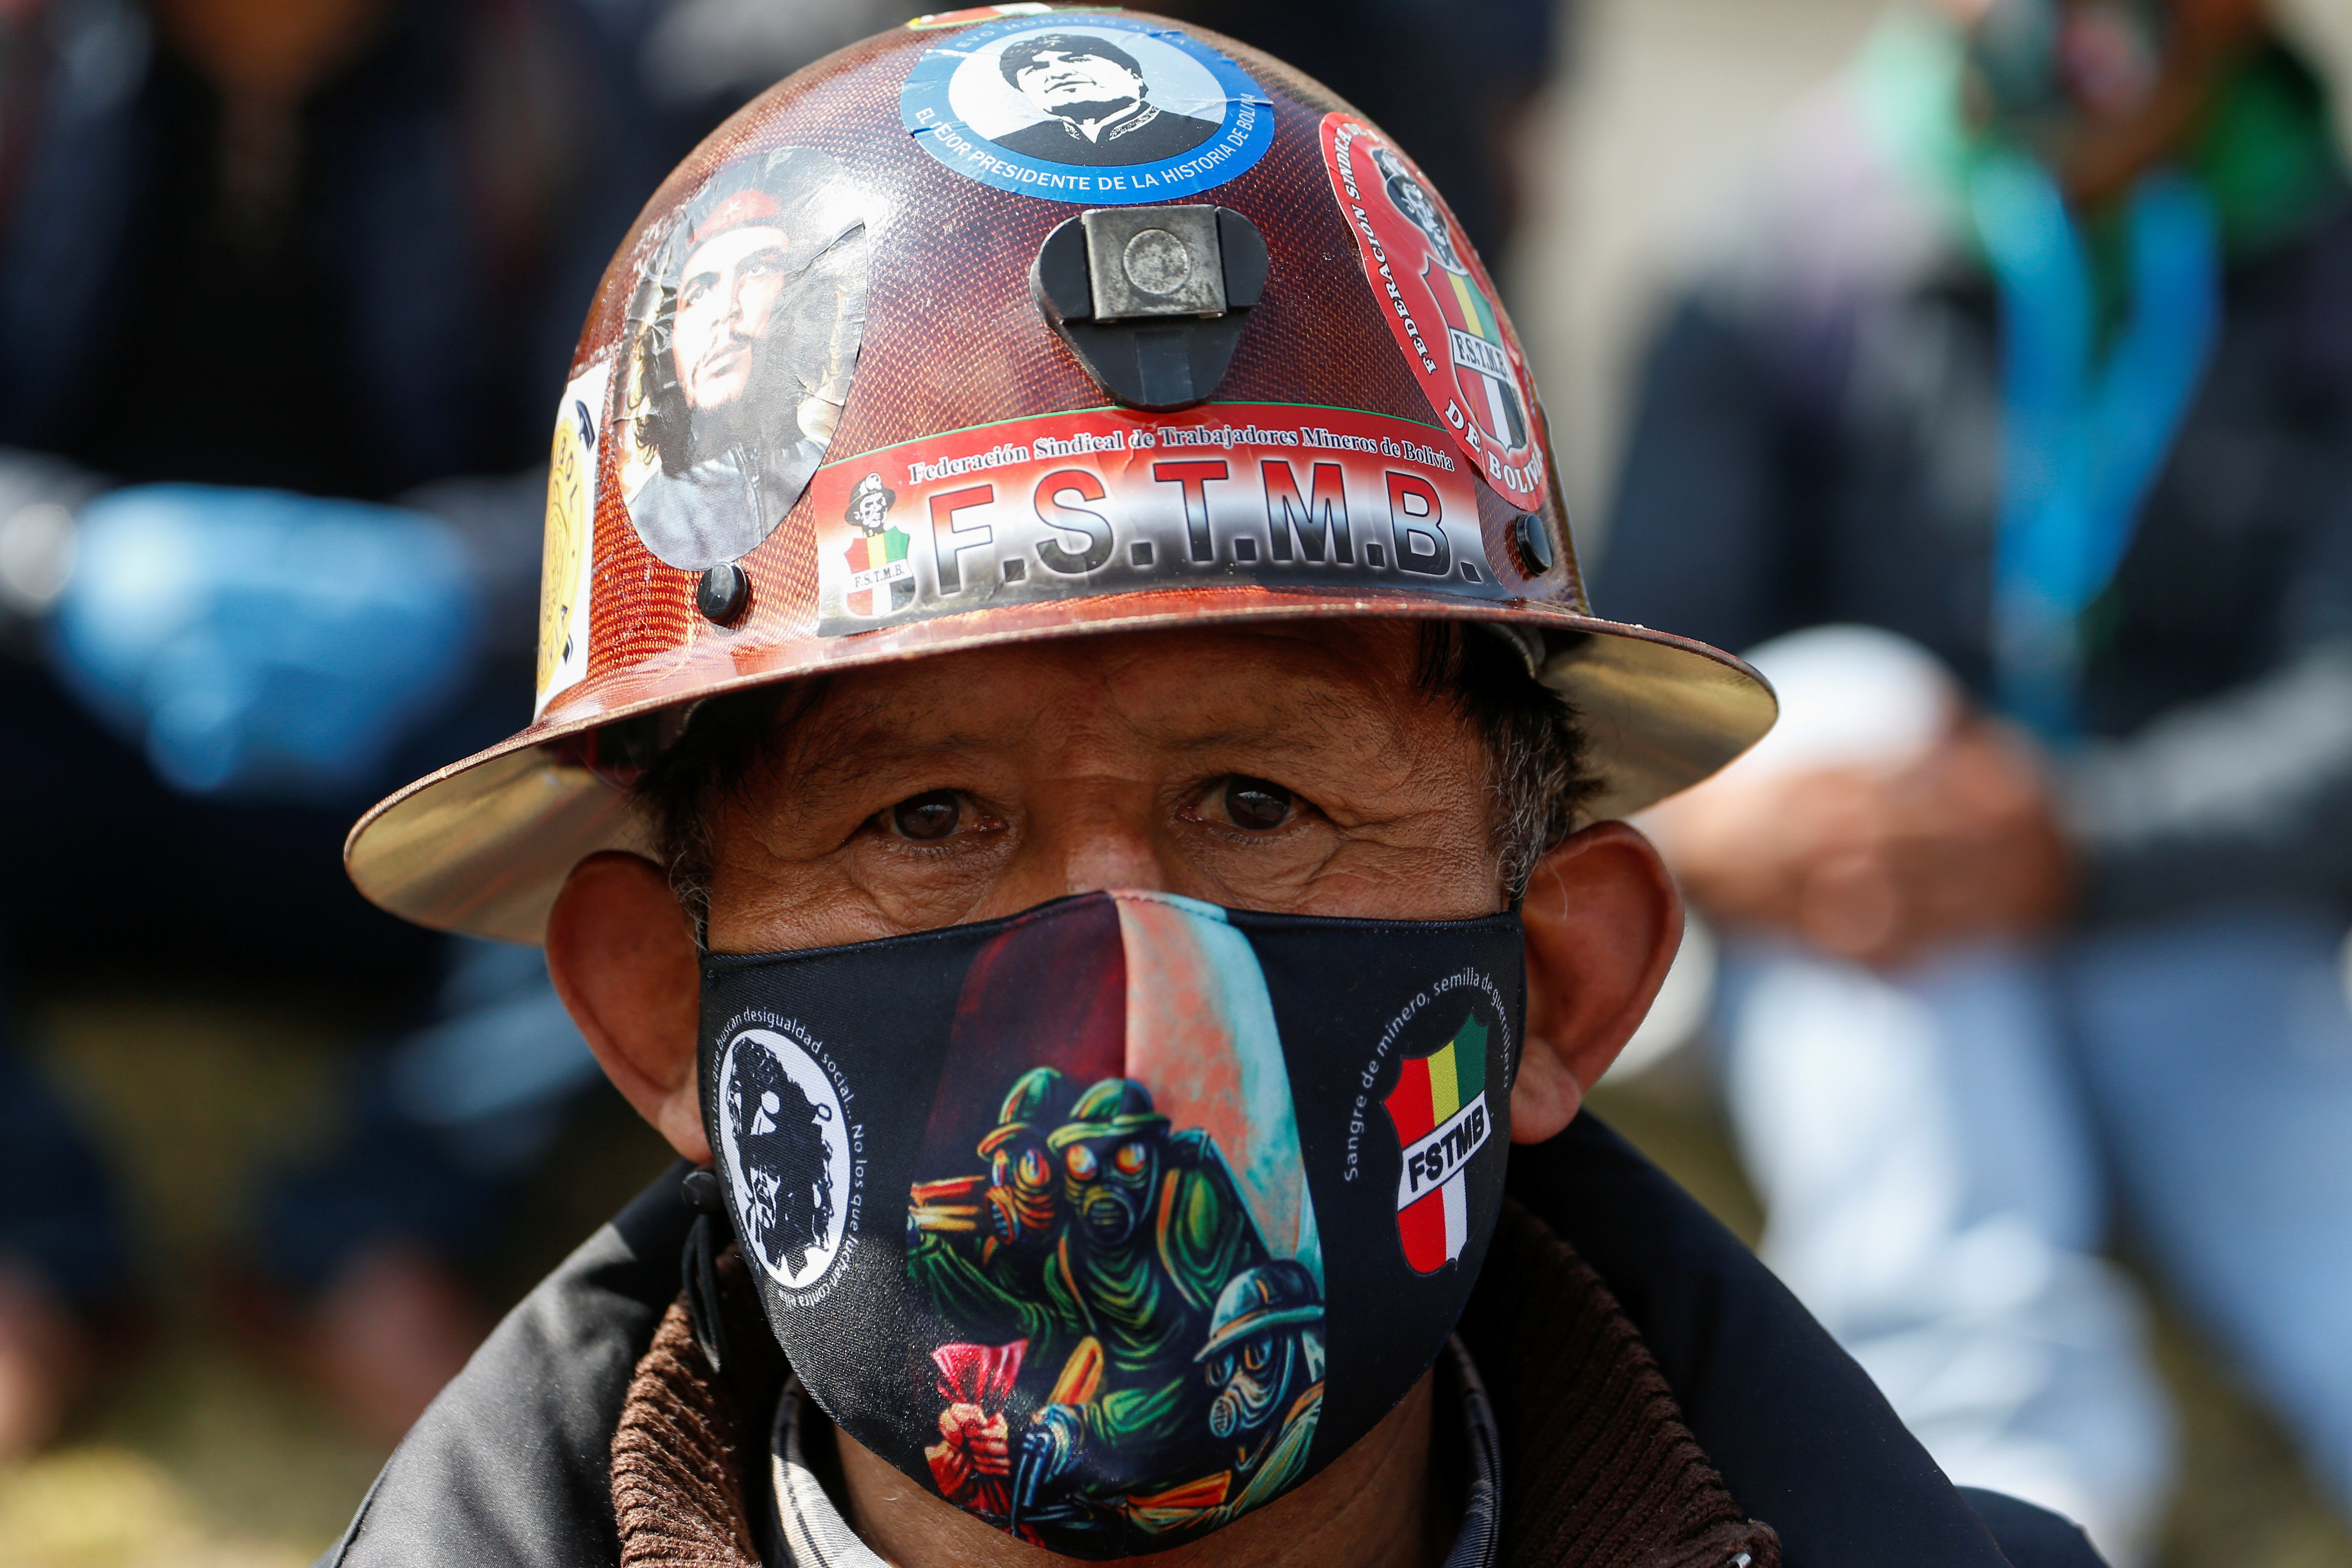 A mine worker looks on during a protest rally called by Bolivian workers unions, against interim President Jeanine Anez government demanding the economic reactivation of their sectors, amid the coronavirus disease (COVID-19) outbreak, in La Paz, Bolivia, July 14, 2020